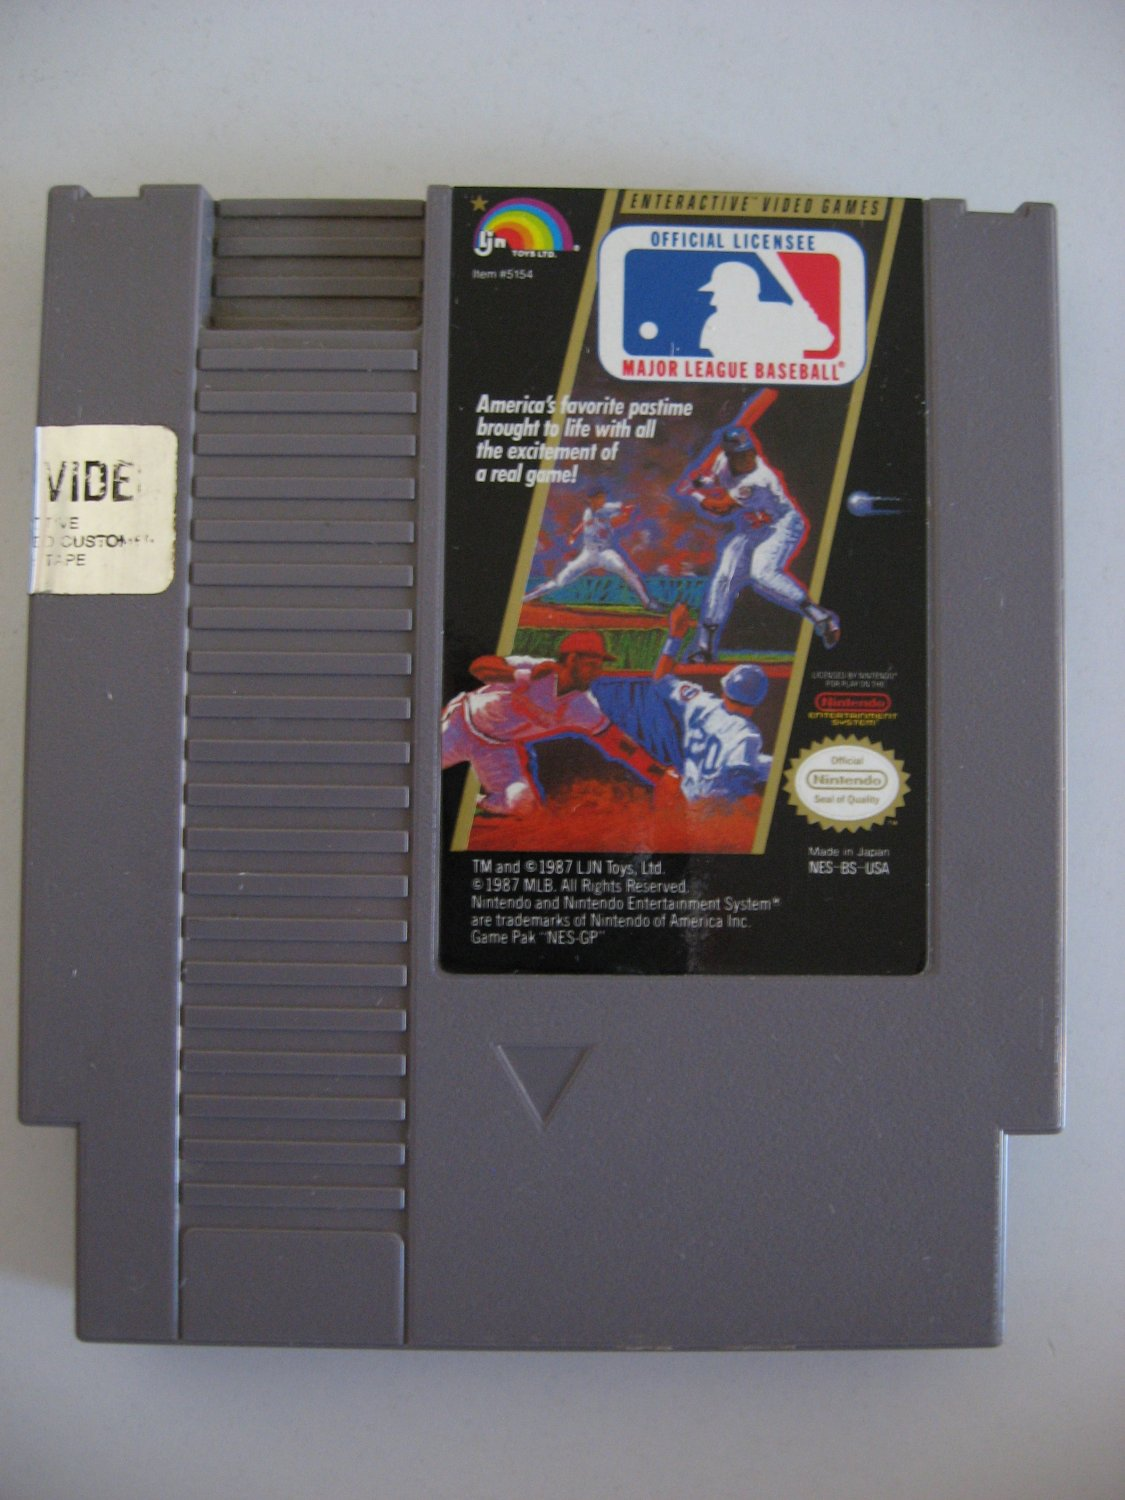 Major League Baseball - Game Cartridge